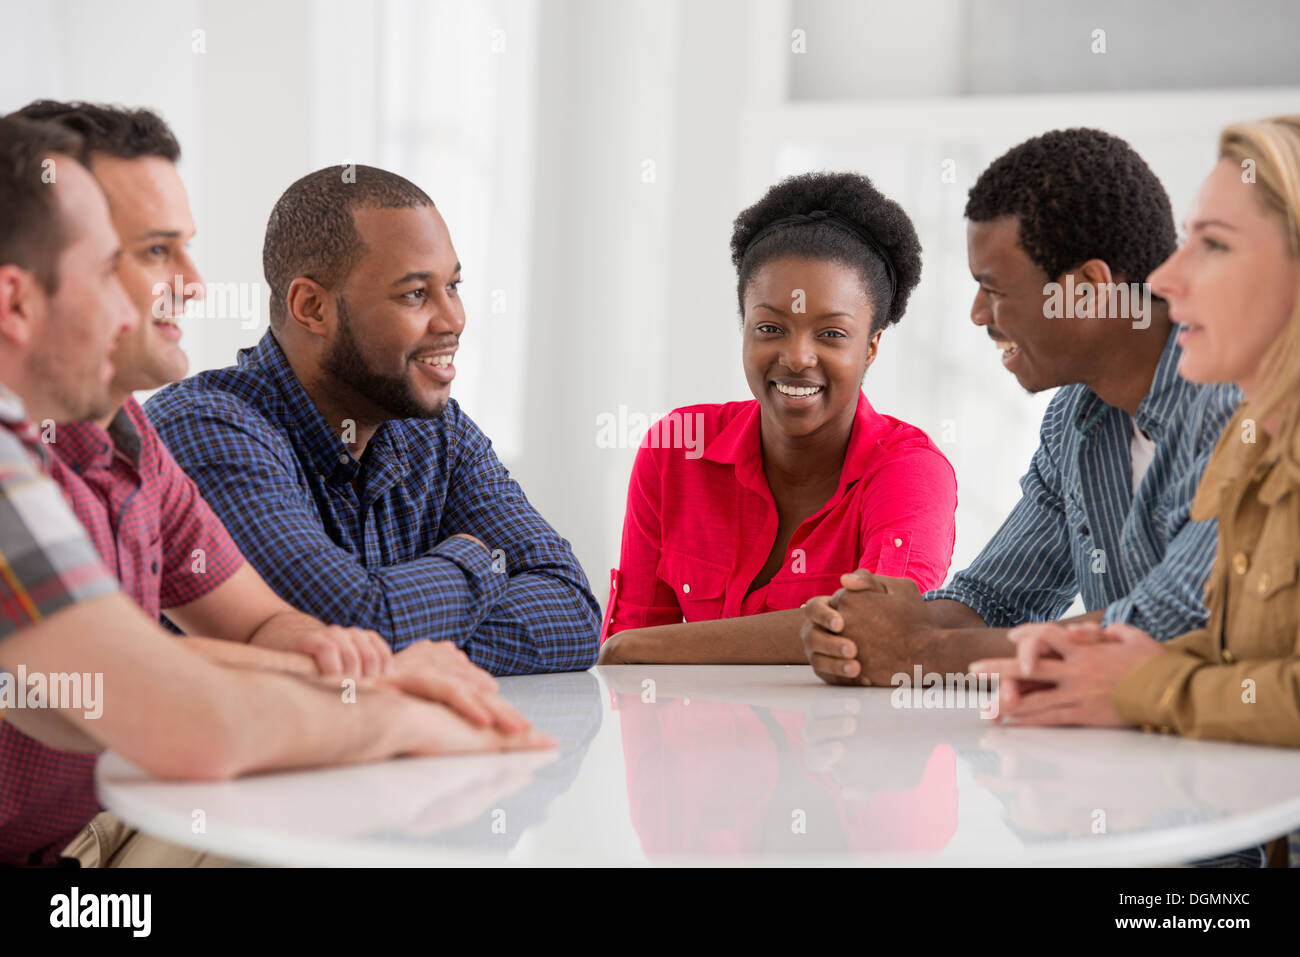 Pure & Simple Health Education: Communication Is Key |Group Talking